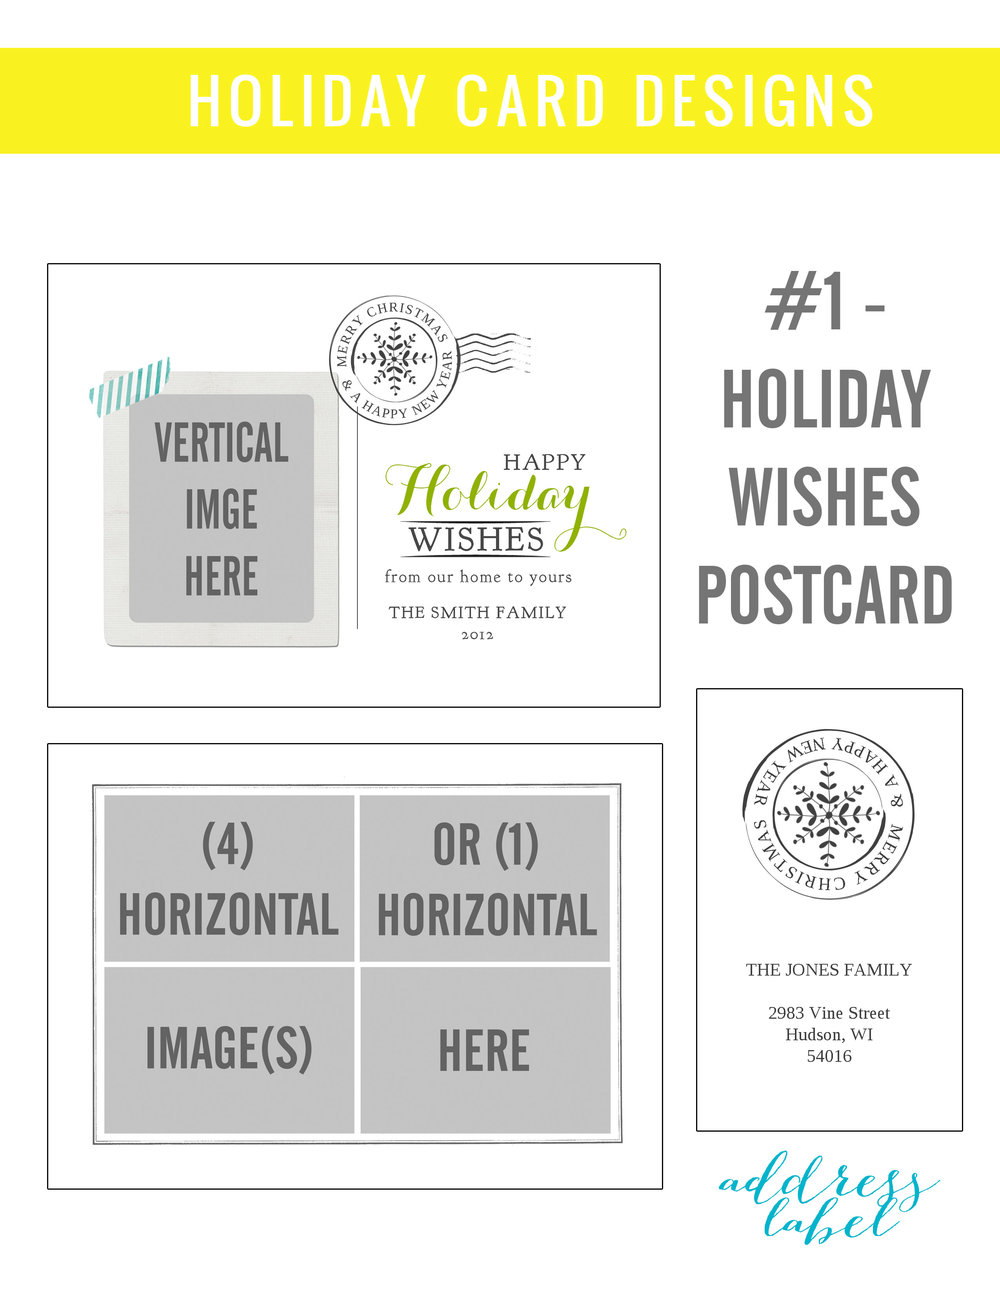 1-HOLIDAY WISHES POSTCARD.jpg